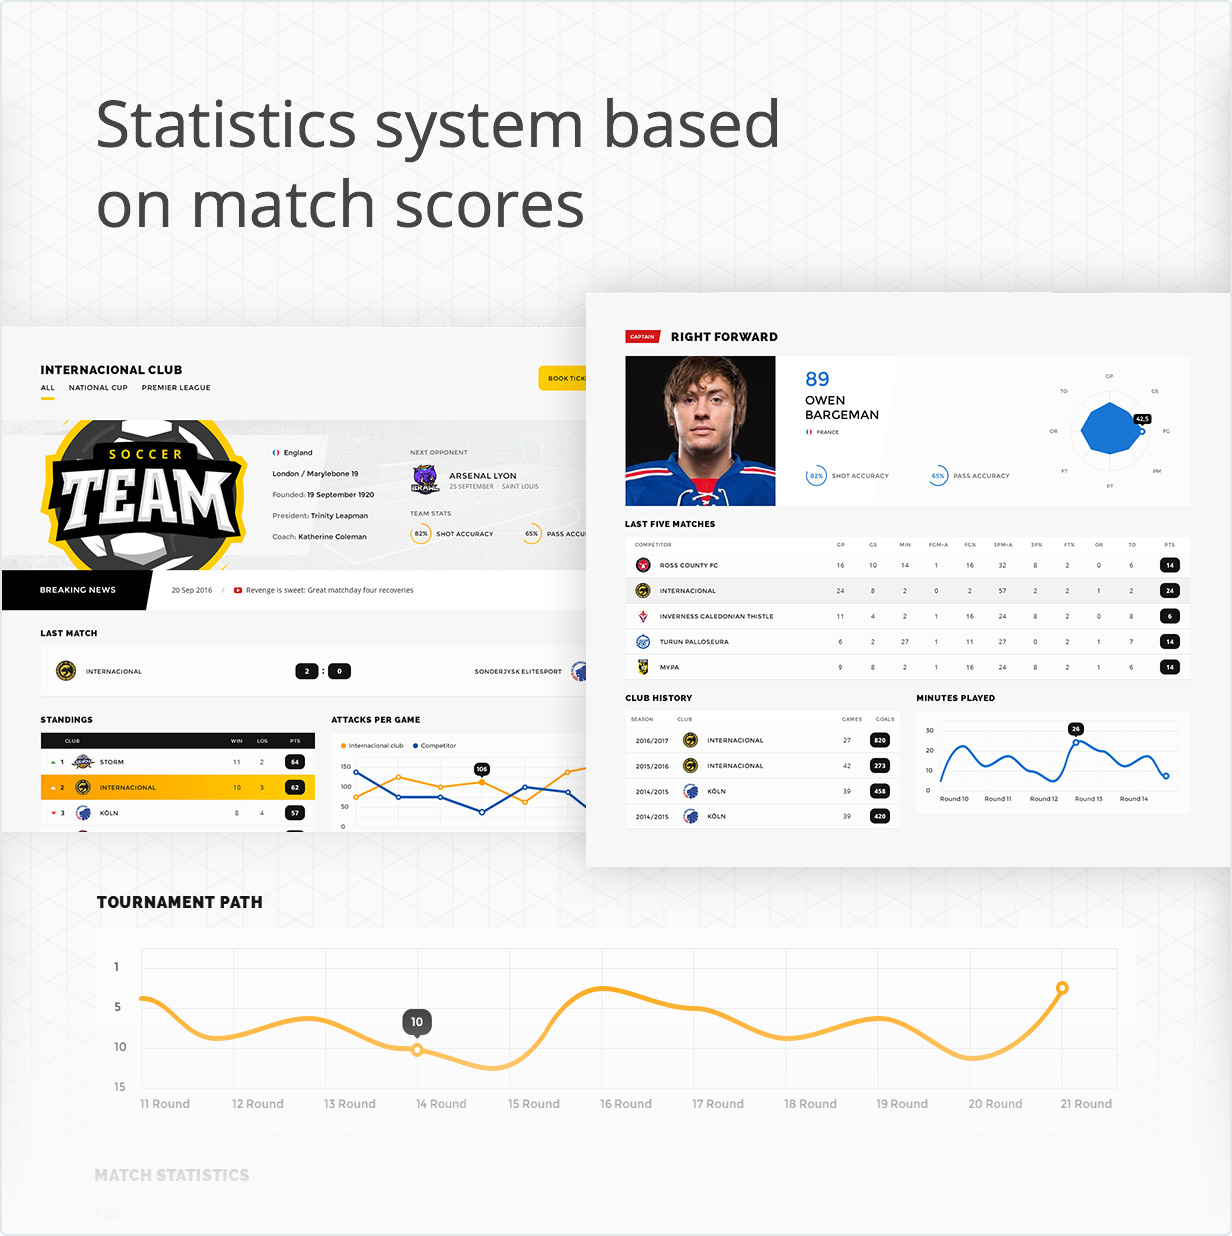 Statistic ststem based on match scores